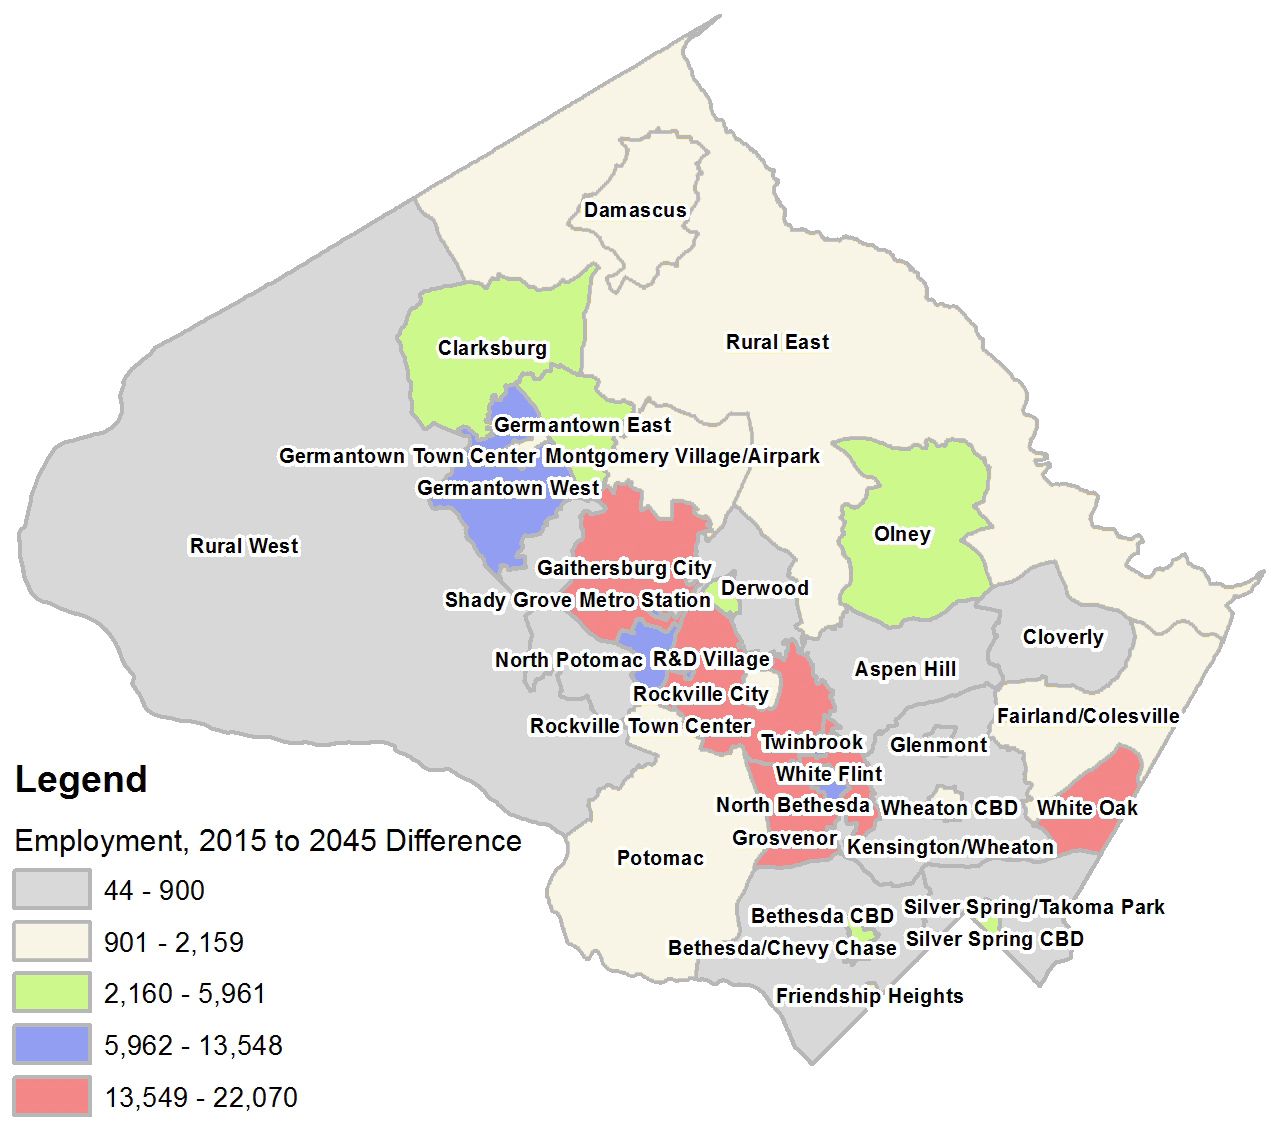 Employment Change Round 9.0 - 2015 to 2045